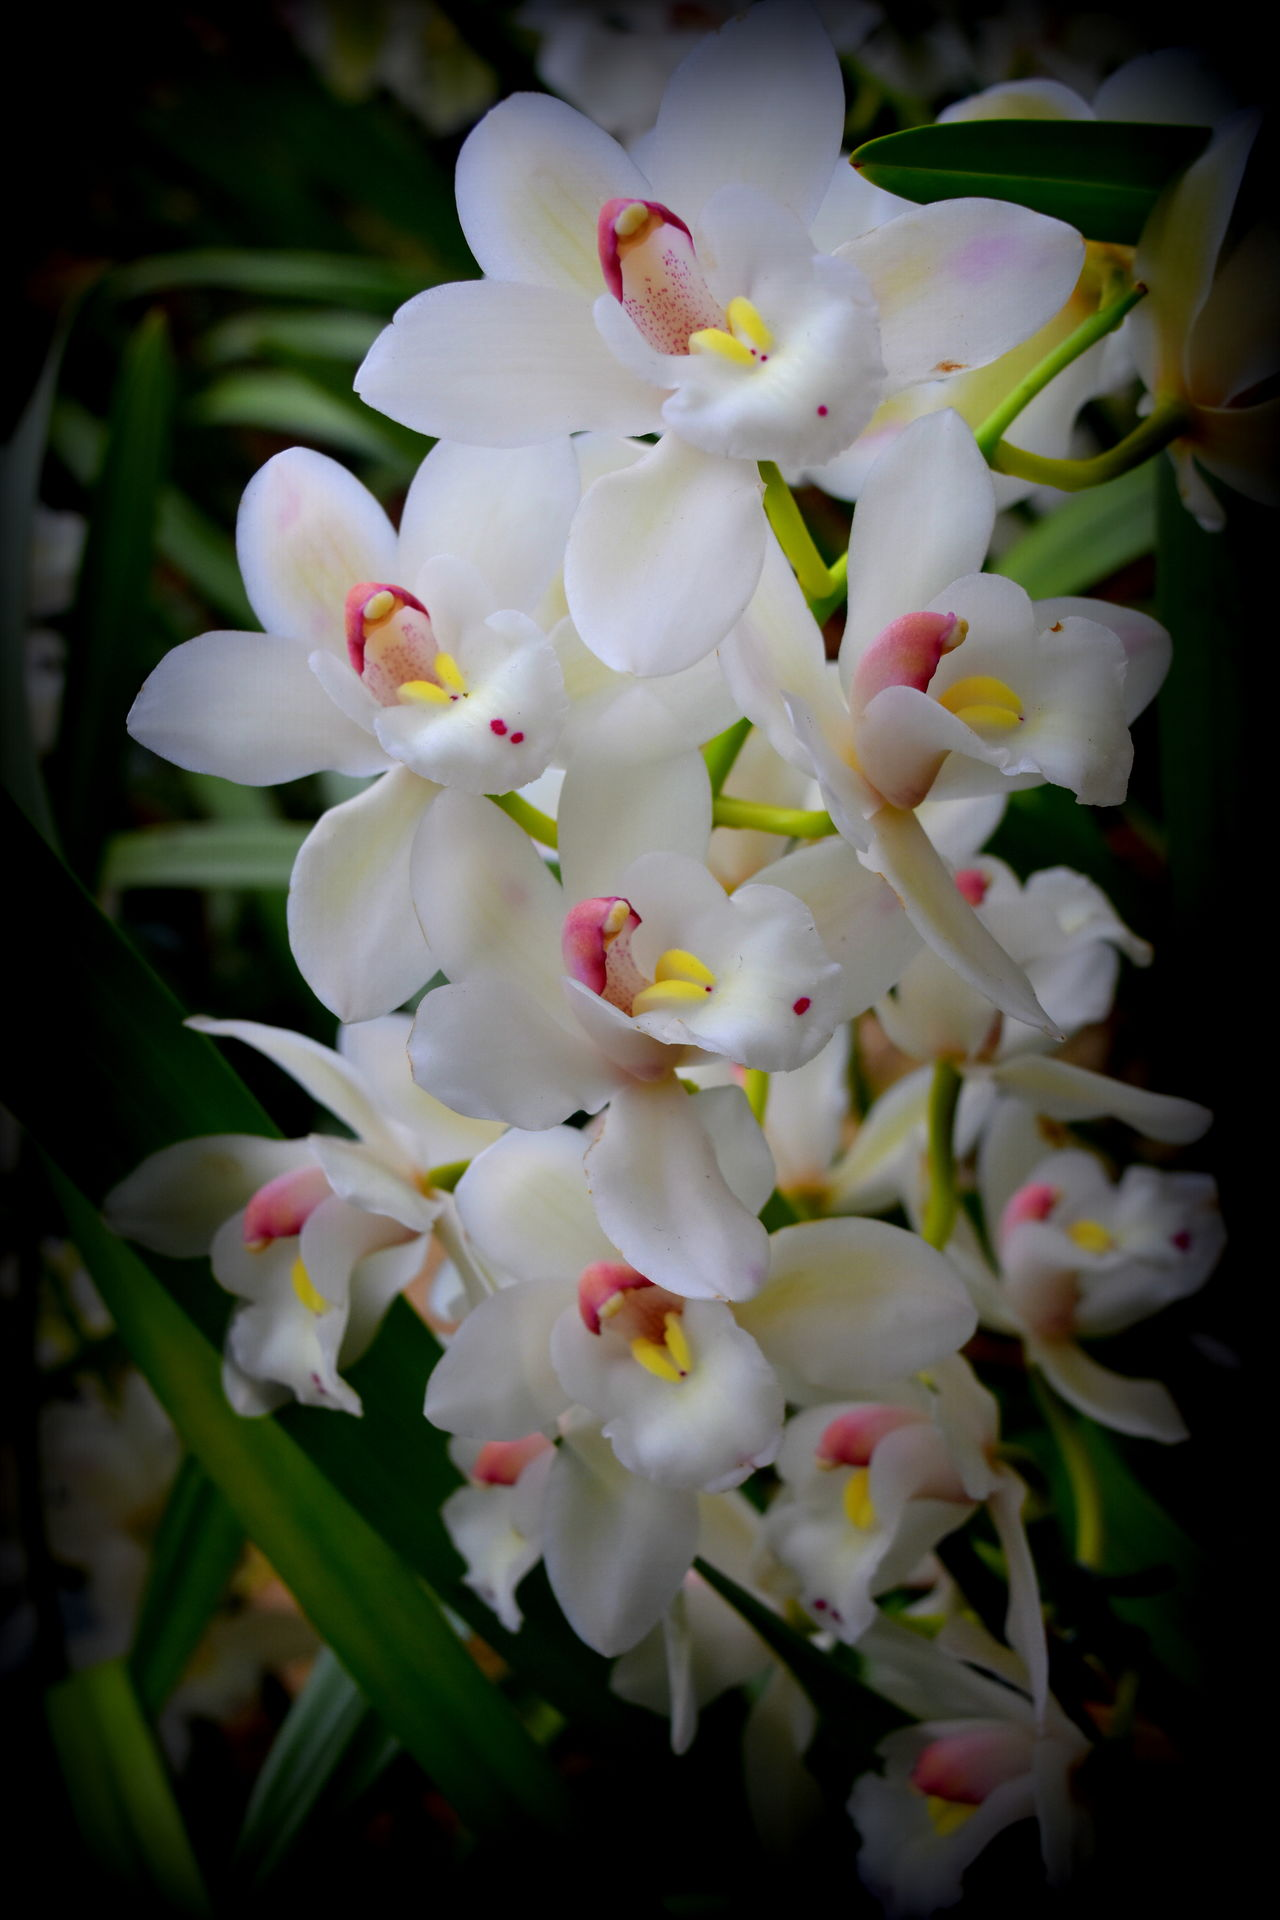 Beauty In Nature Blooming Close-up Flower Flower Head Fragility Freshness Growth Nature No People Orchid Orchid Blossoms Orchid Flower Orchids Orchids By Jj Petal Plant White